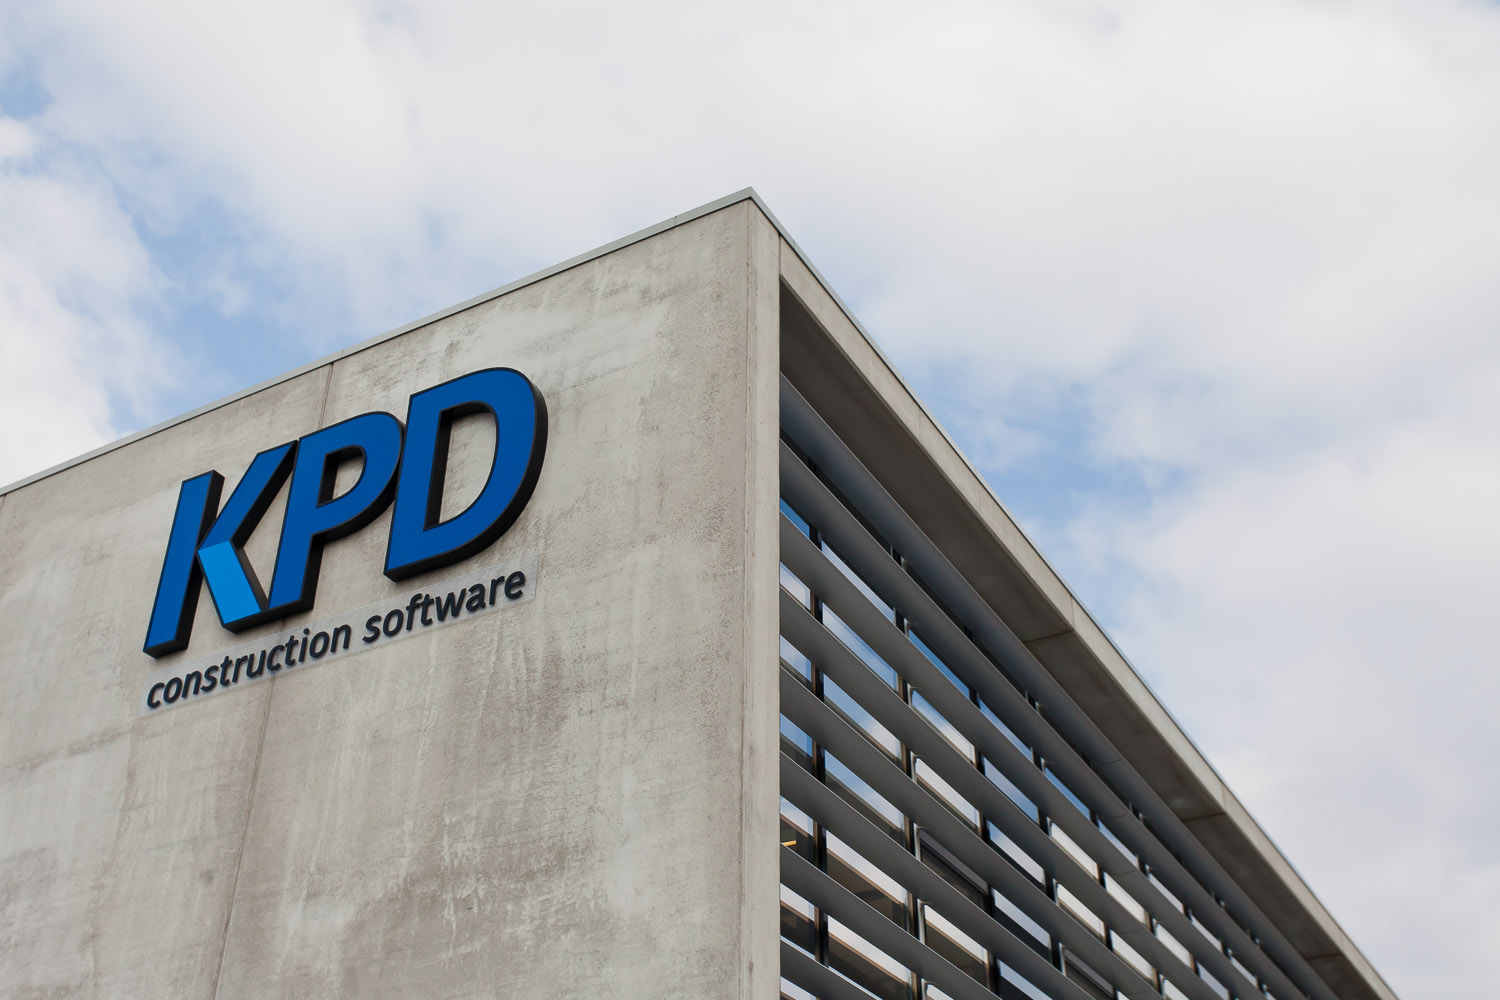 KPD services opts for veeam cloud connect backup